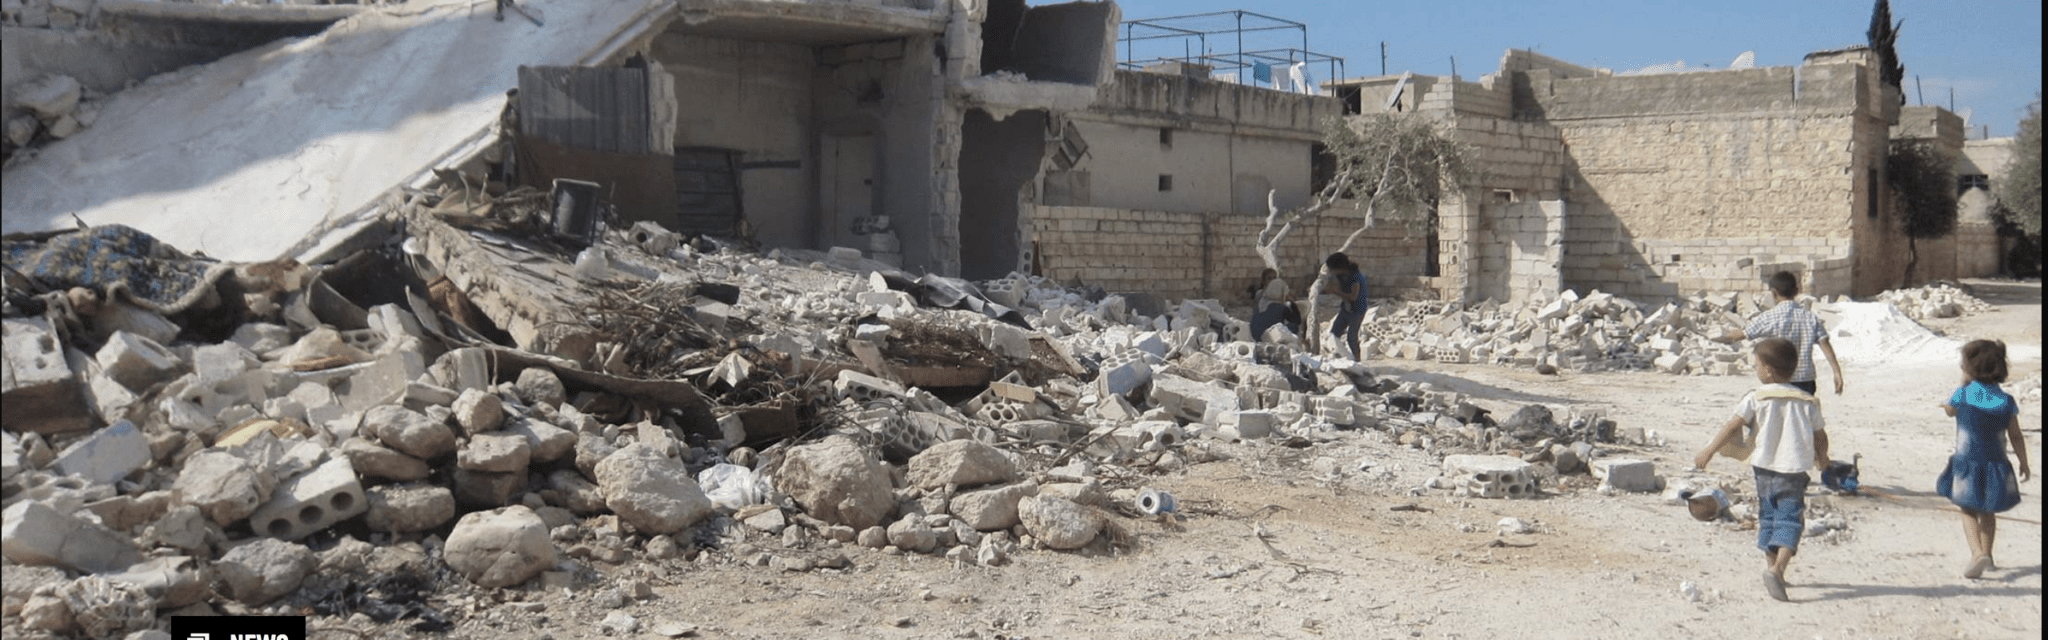 Syria: Unlawful attacks using cluster munitions and ...